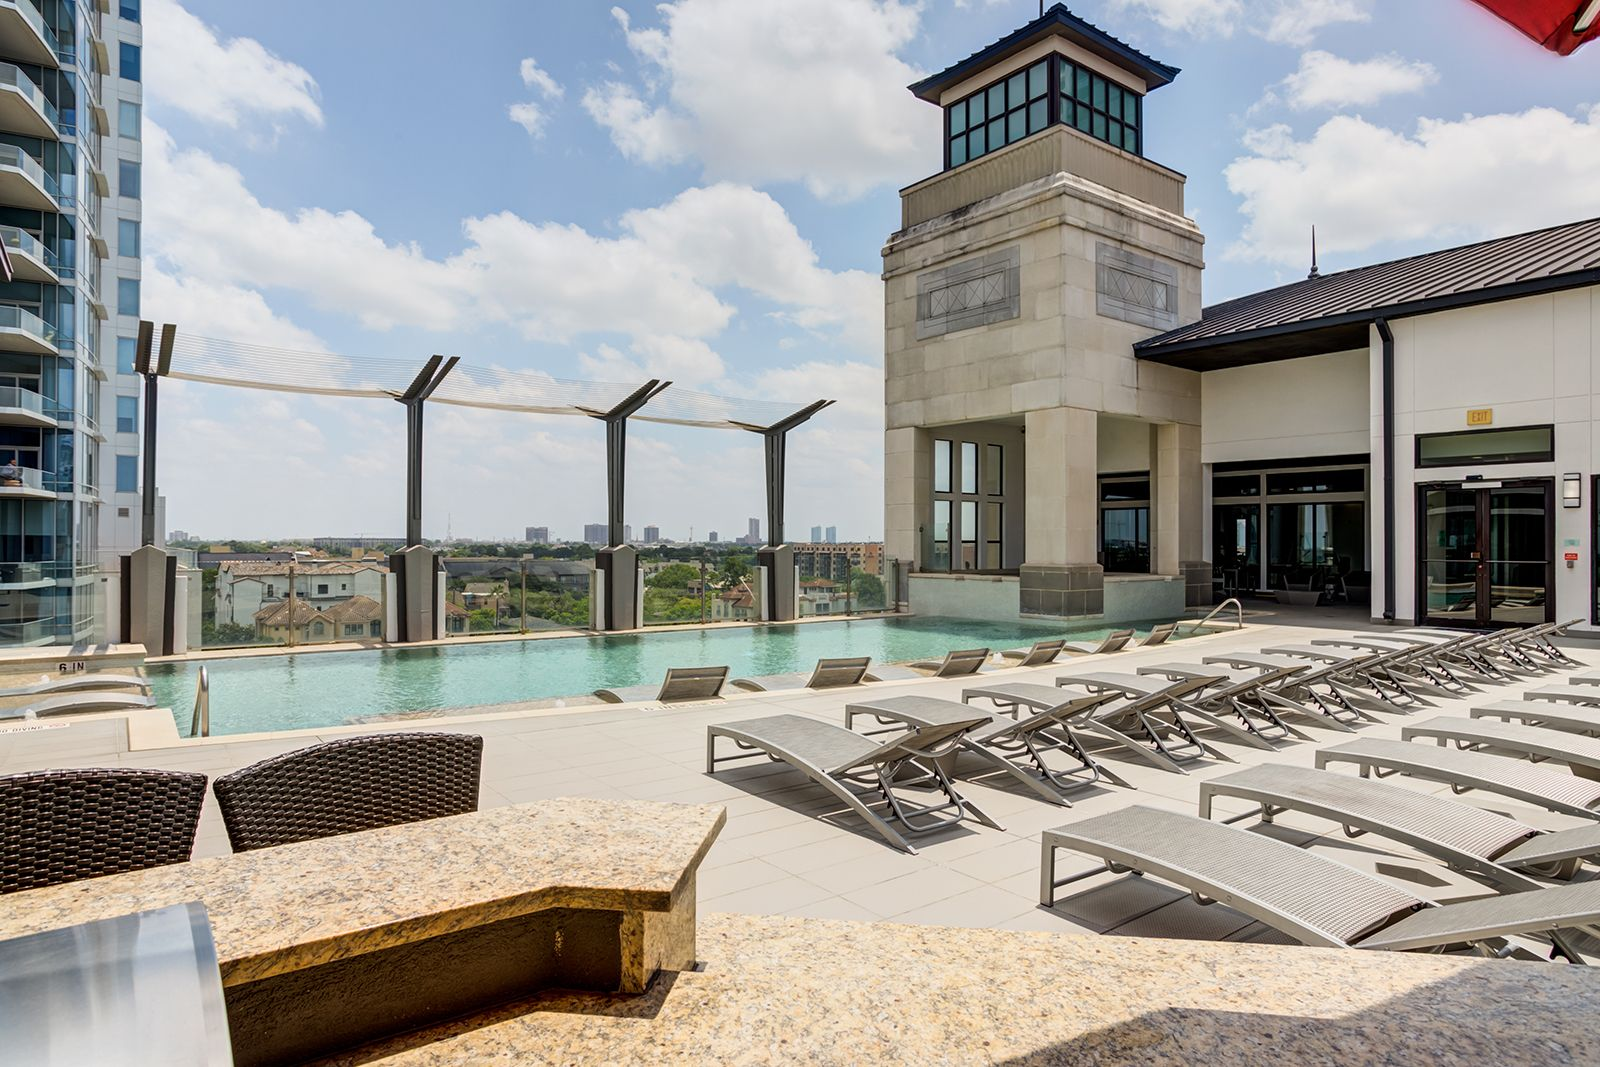 Soak Up The Sun On Our Sundeck Just Lounge Back And Pretend You Re On A Tropical Island Ar Luxury Apartments Pet Friendly Apartments Apartment Communities